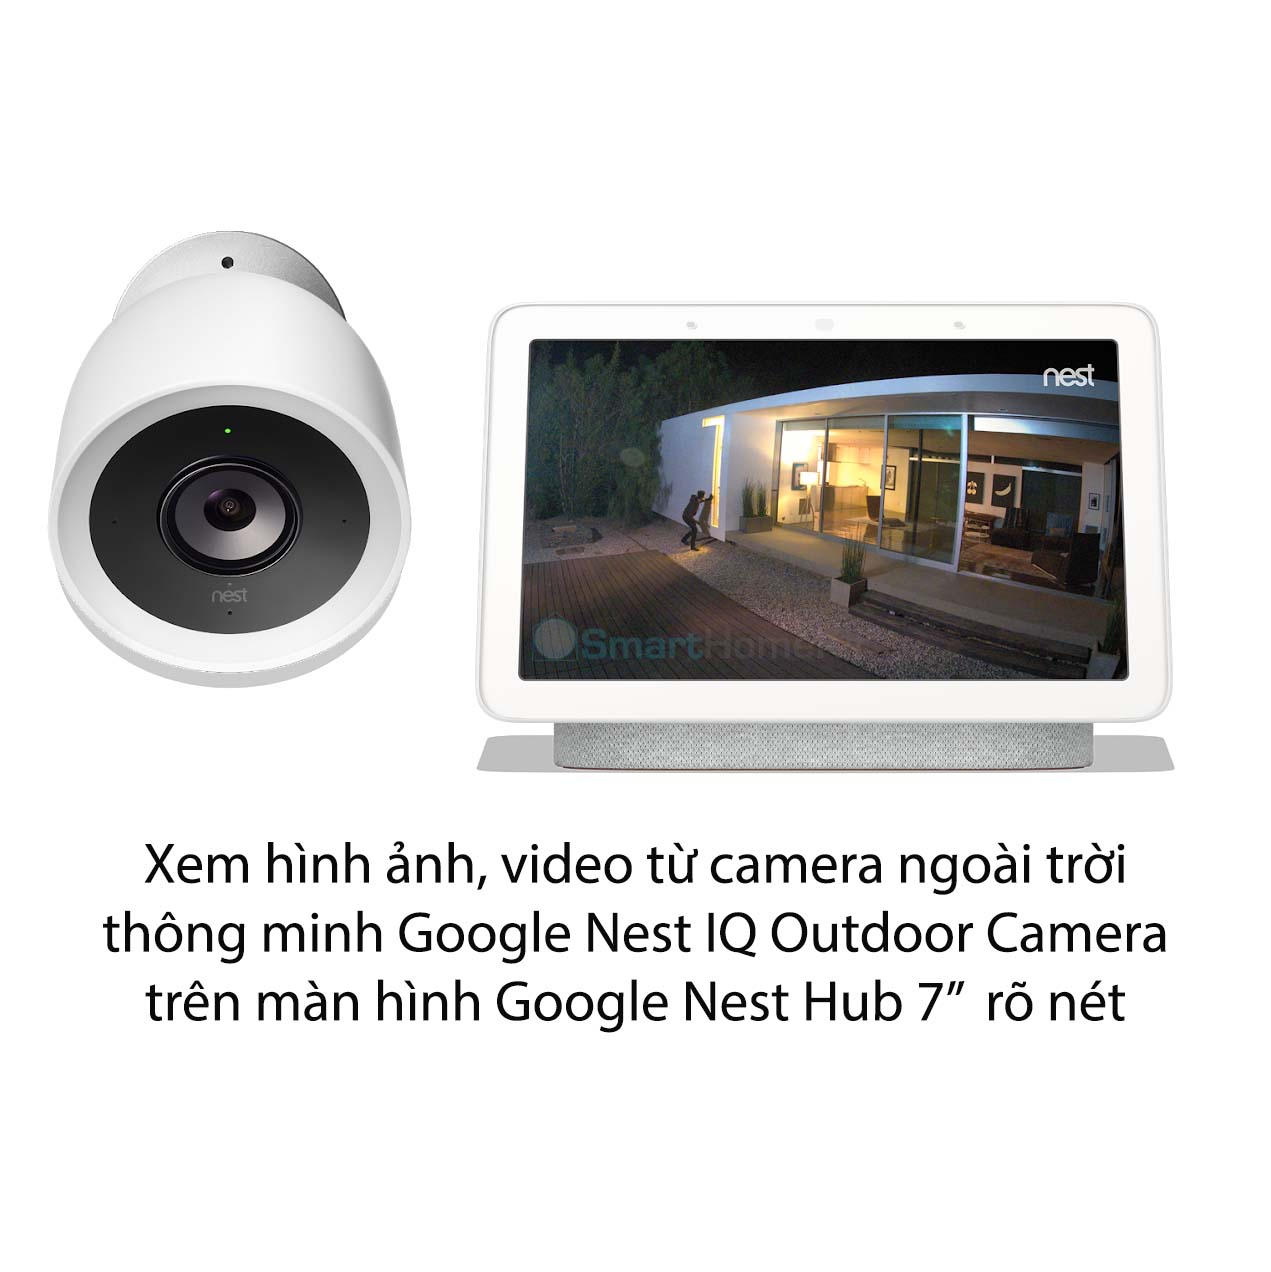 google-nest-hub-charcoal-no-bgr-with-nest-outdoor-text